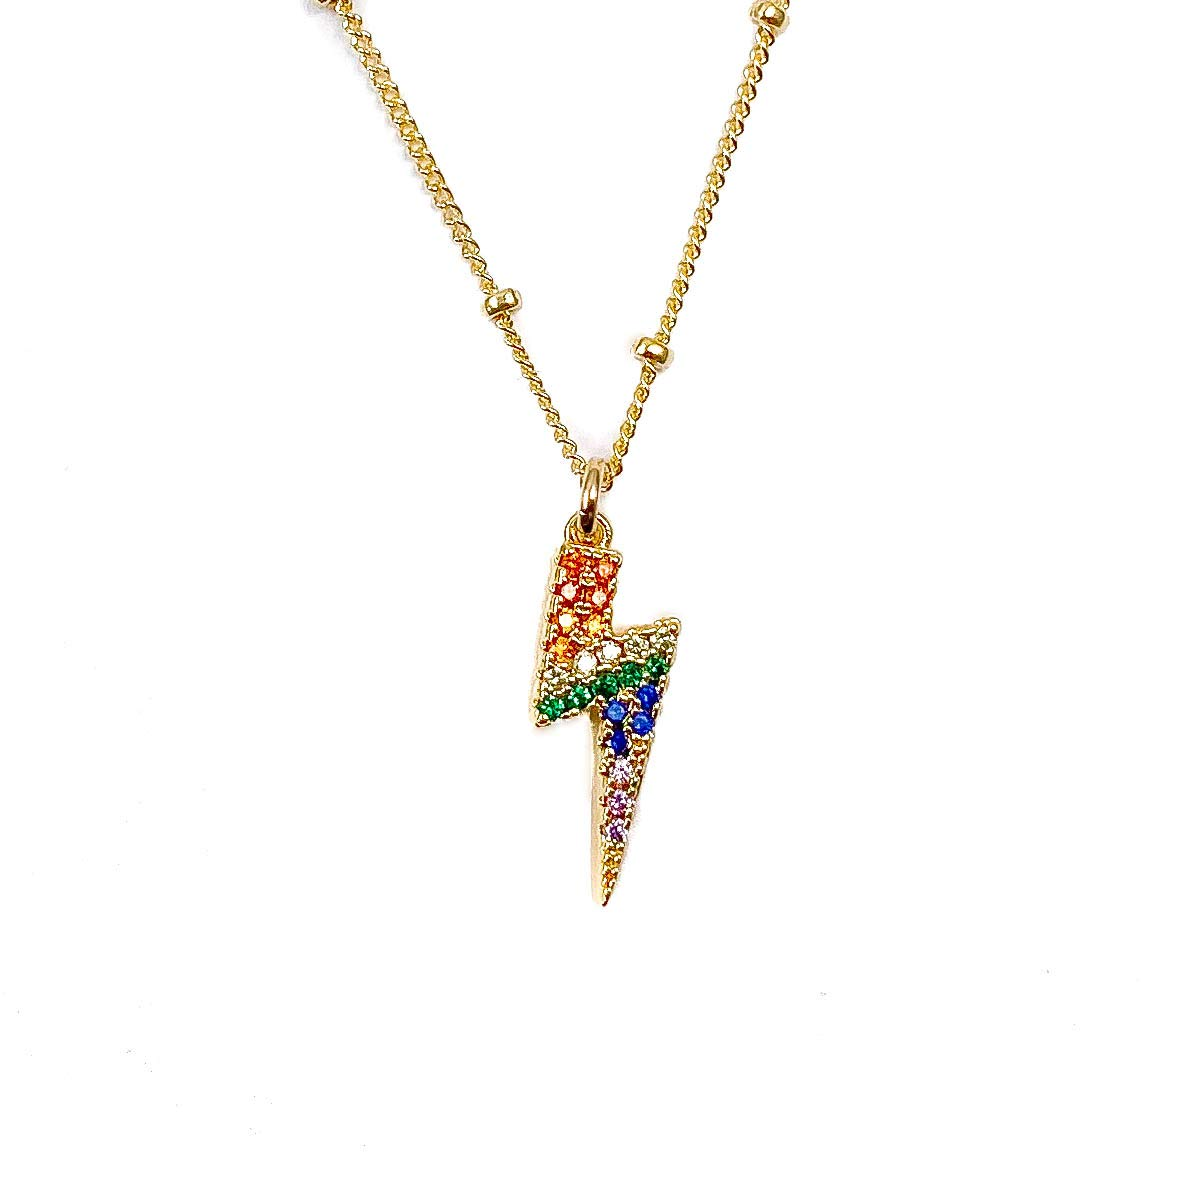 SOMEWHERE Gold necklace with CZ rainbow pendant